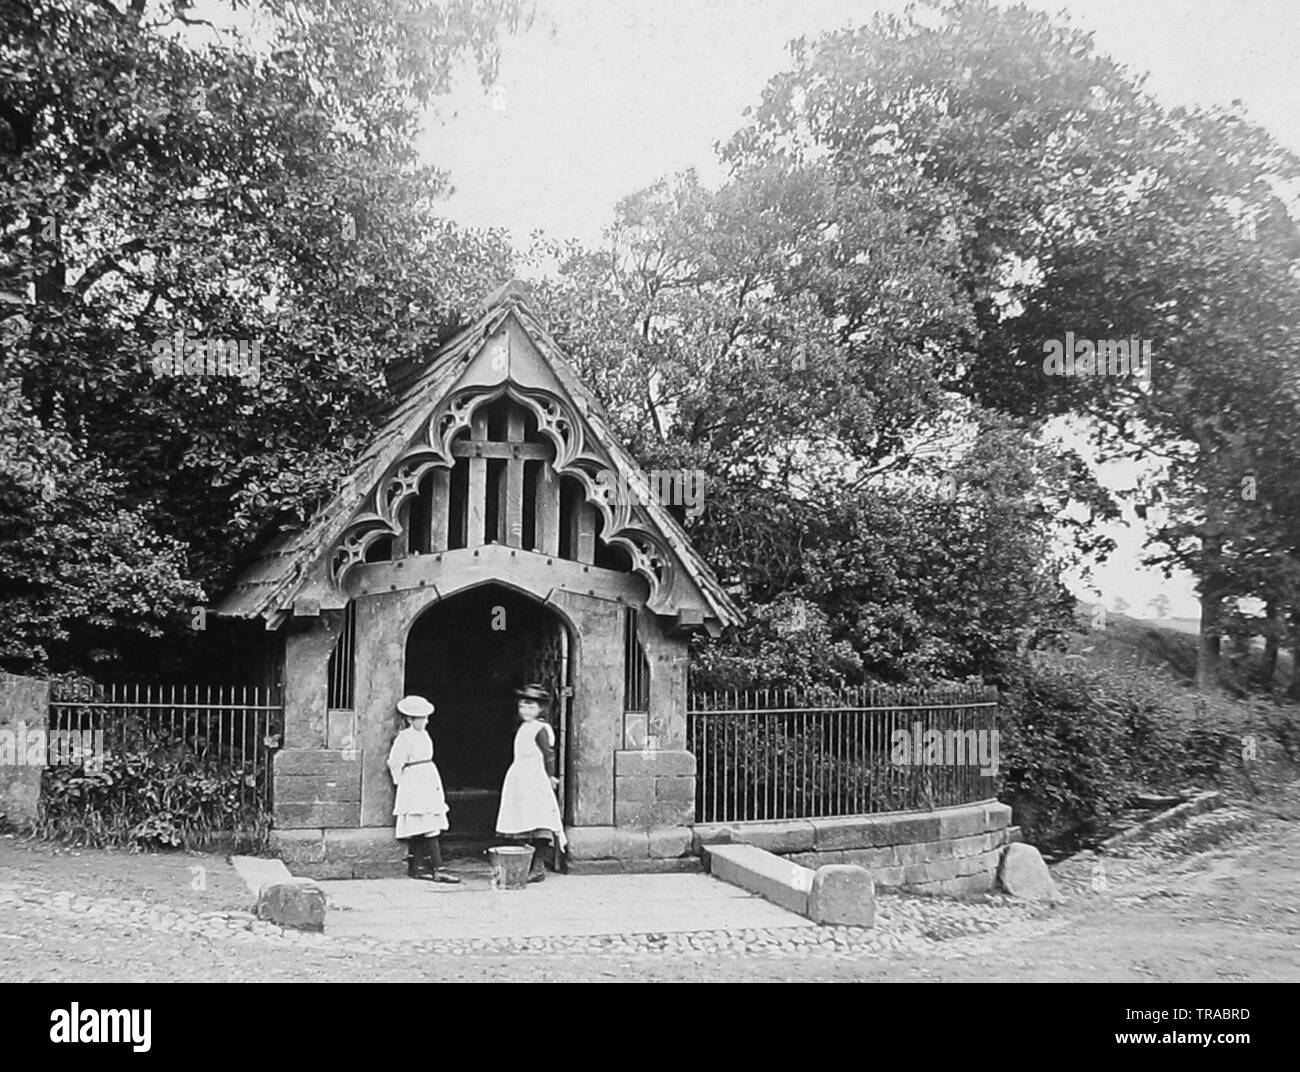 The Well, Budworth - Stock Image